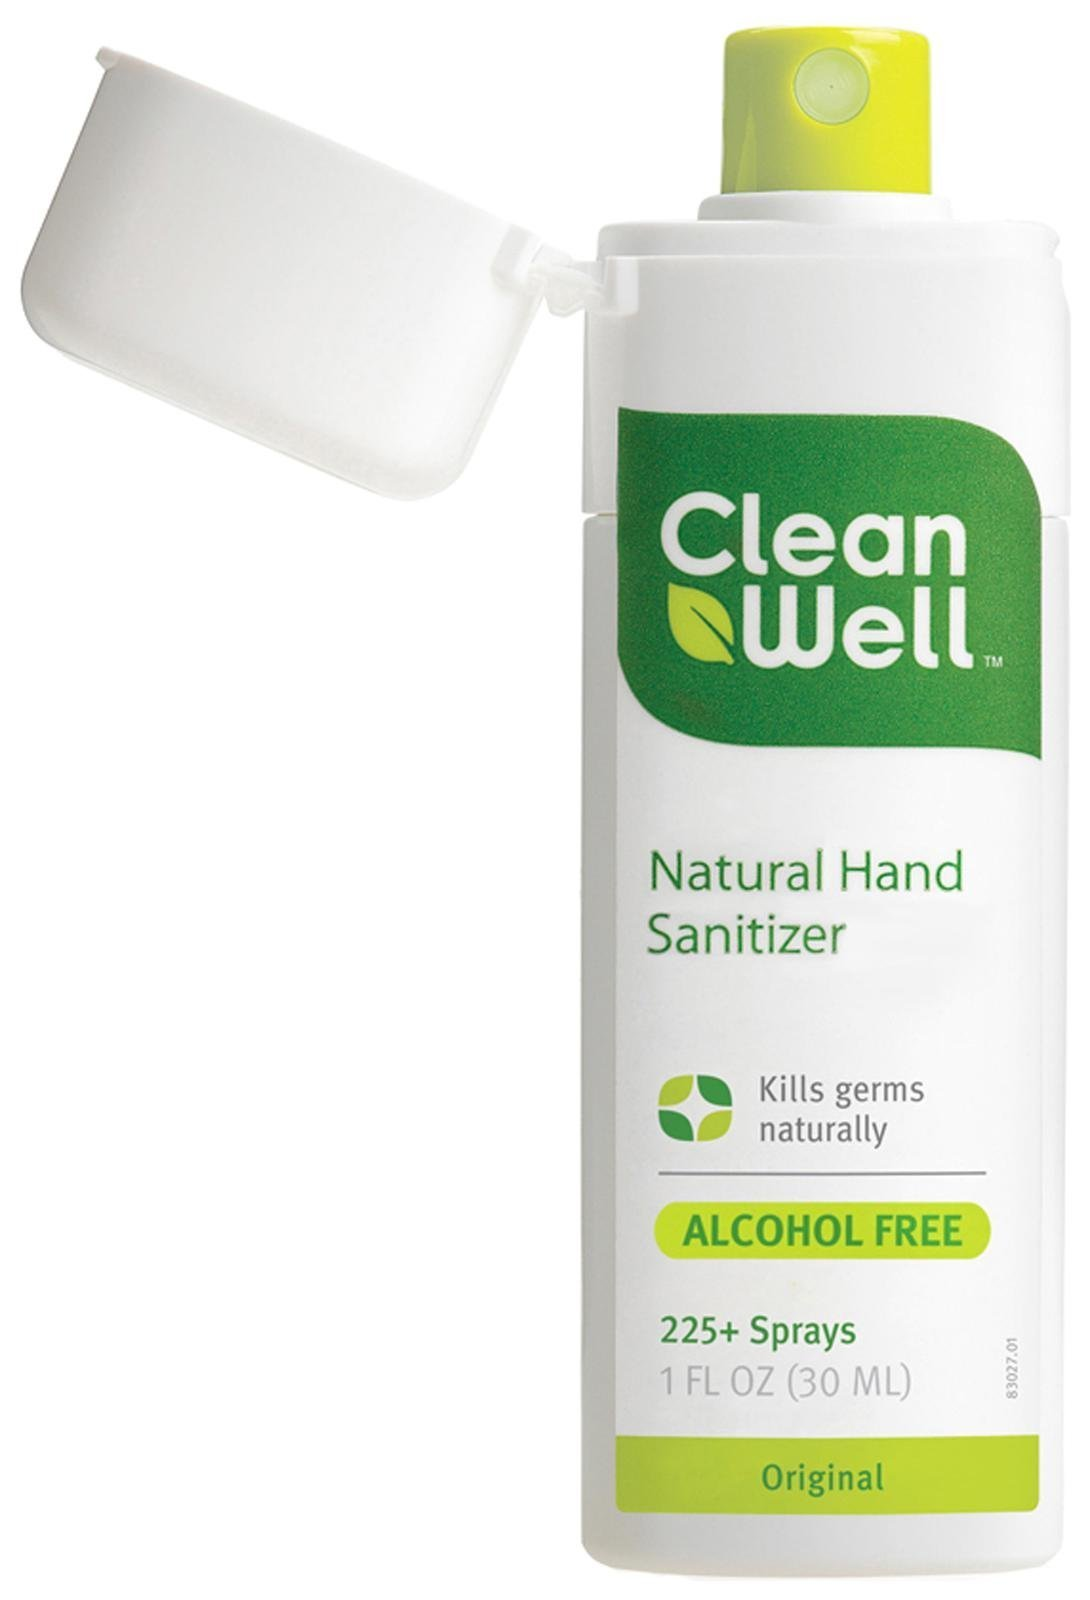 Cleanwell, Sanitiizer Spray Hand Original, 1 Fl Oz, [wellica]